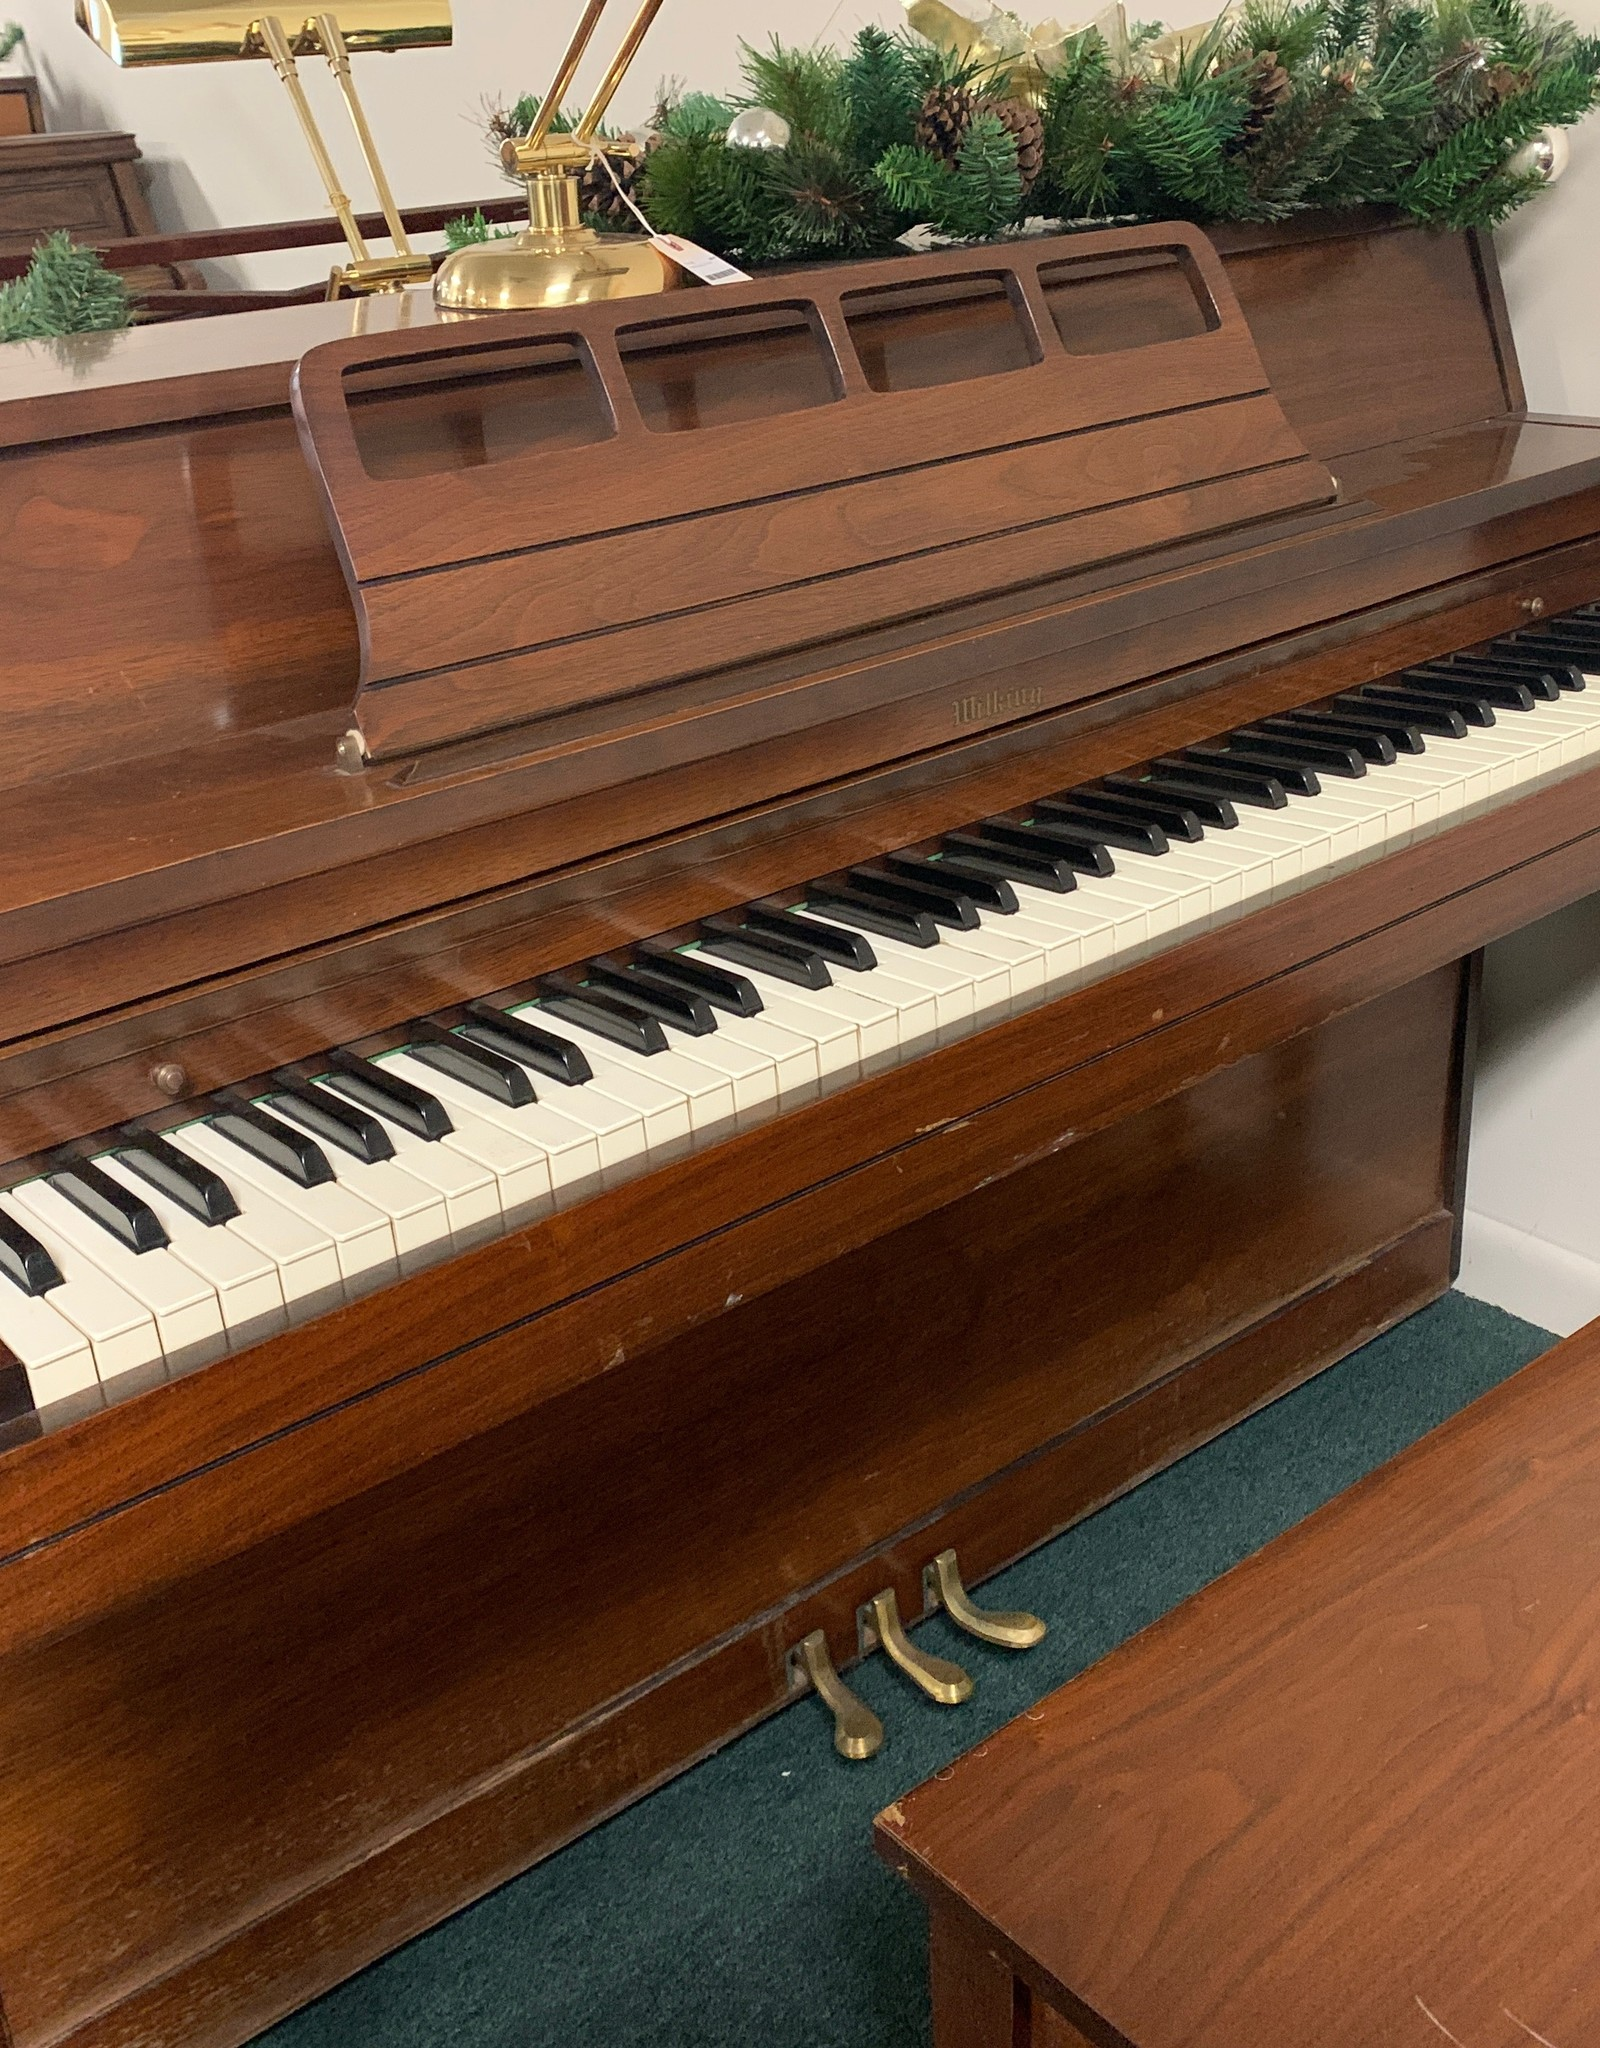 "Wilking Wilking Console 40"" Vertical Piano (Walnut) (pre-owned)"